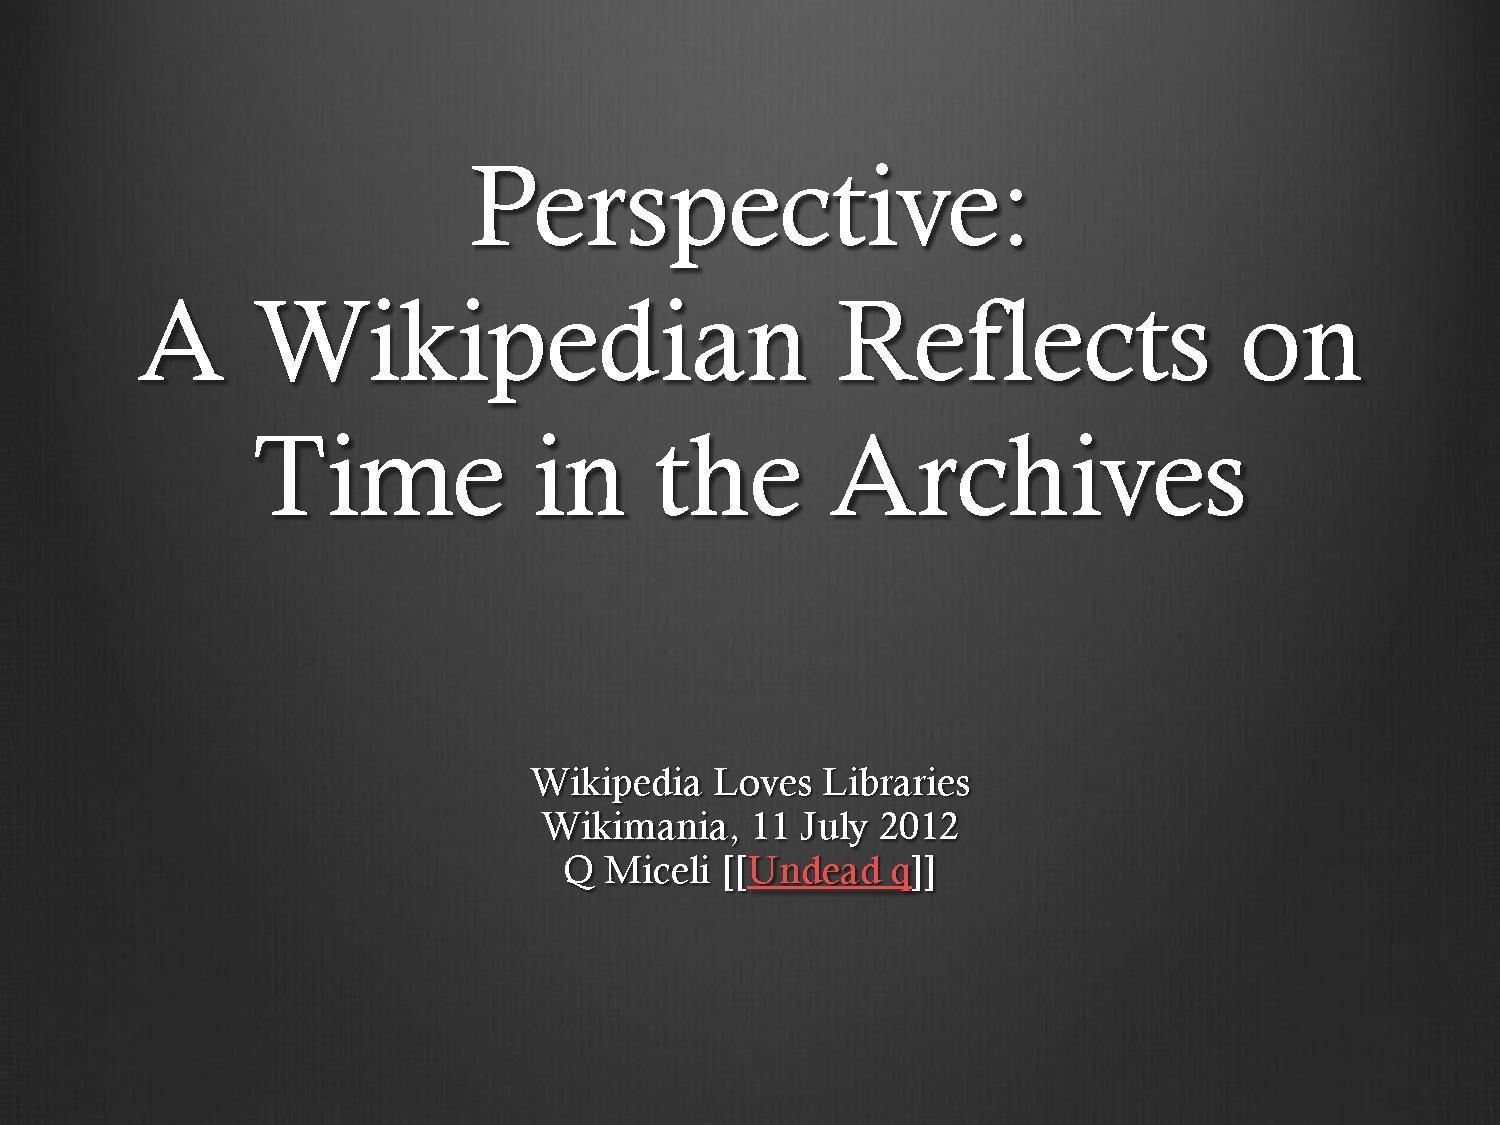 Perspective: A Librarian Wikipedian Reflects on Time n the Archives